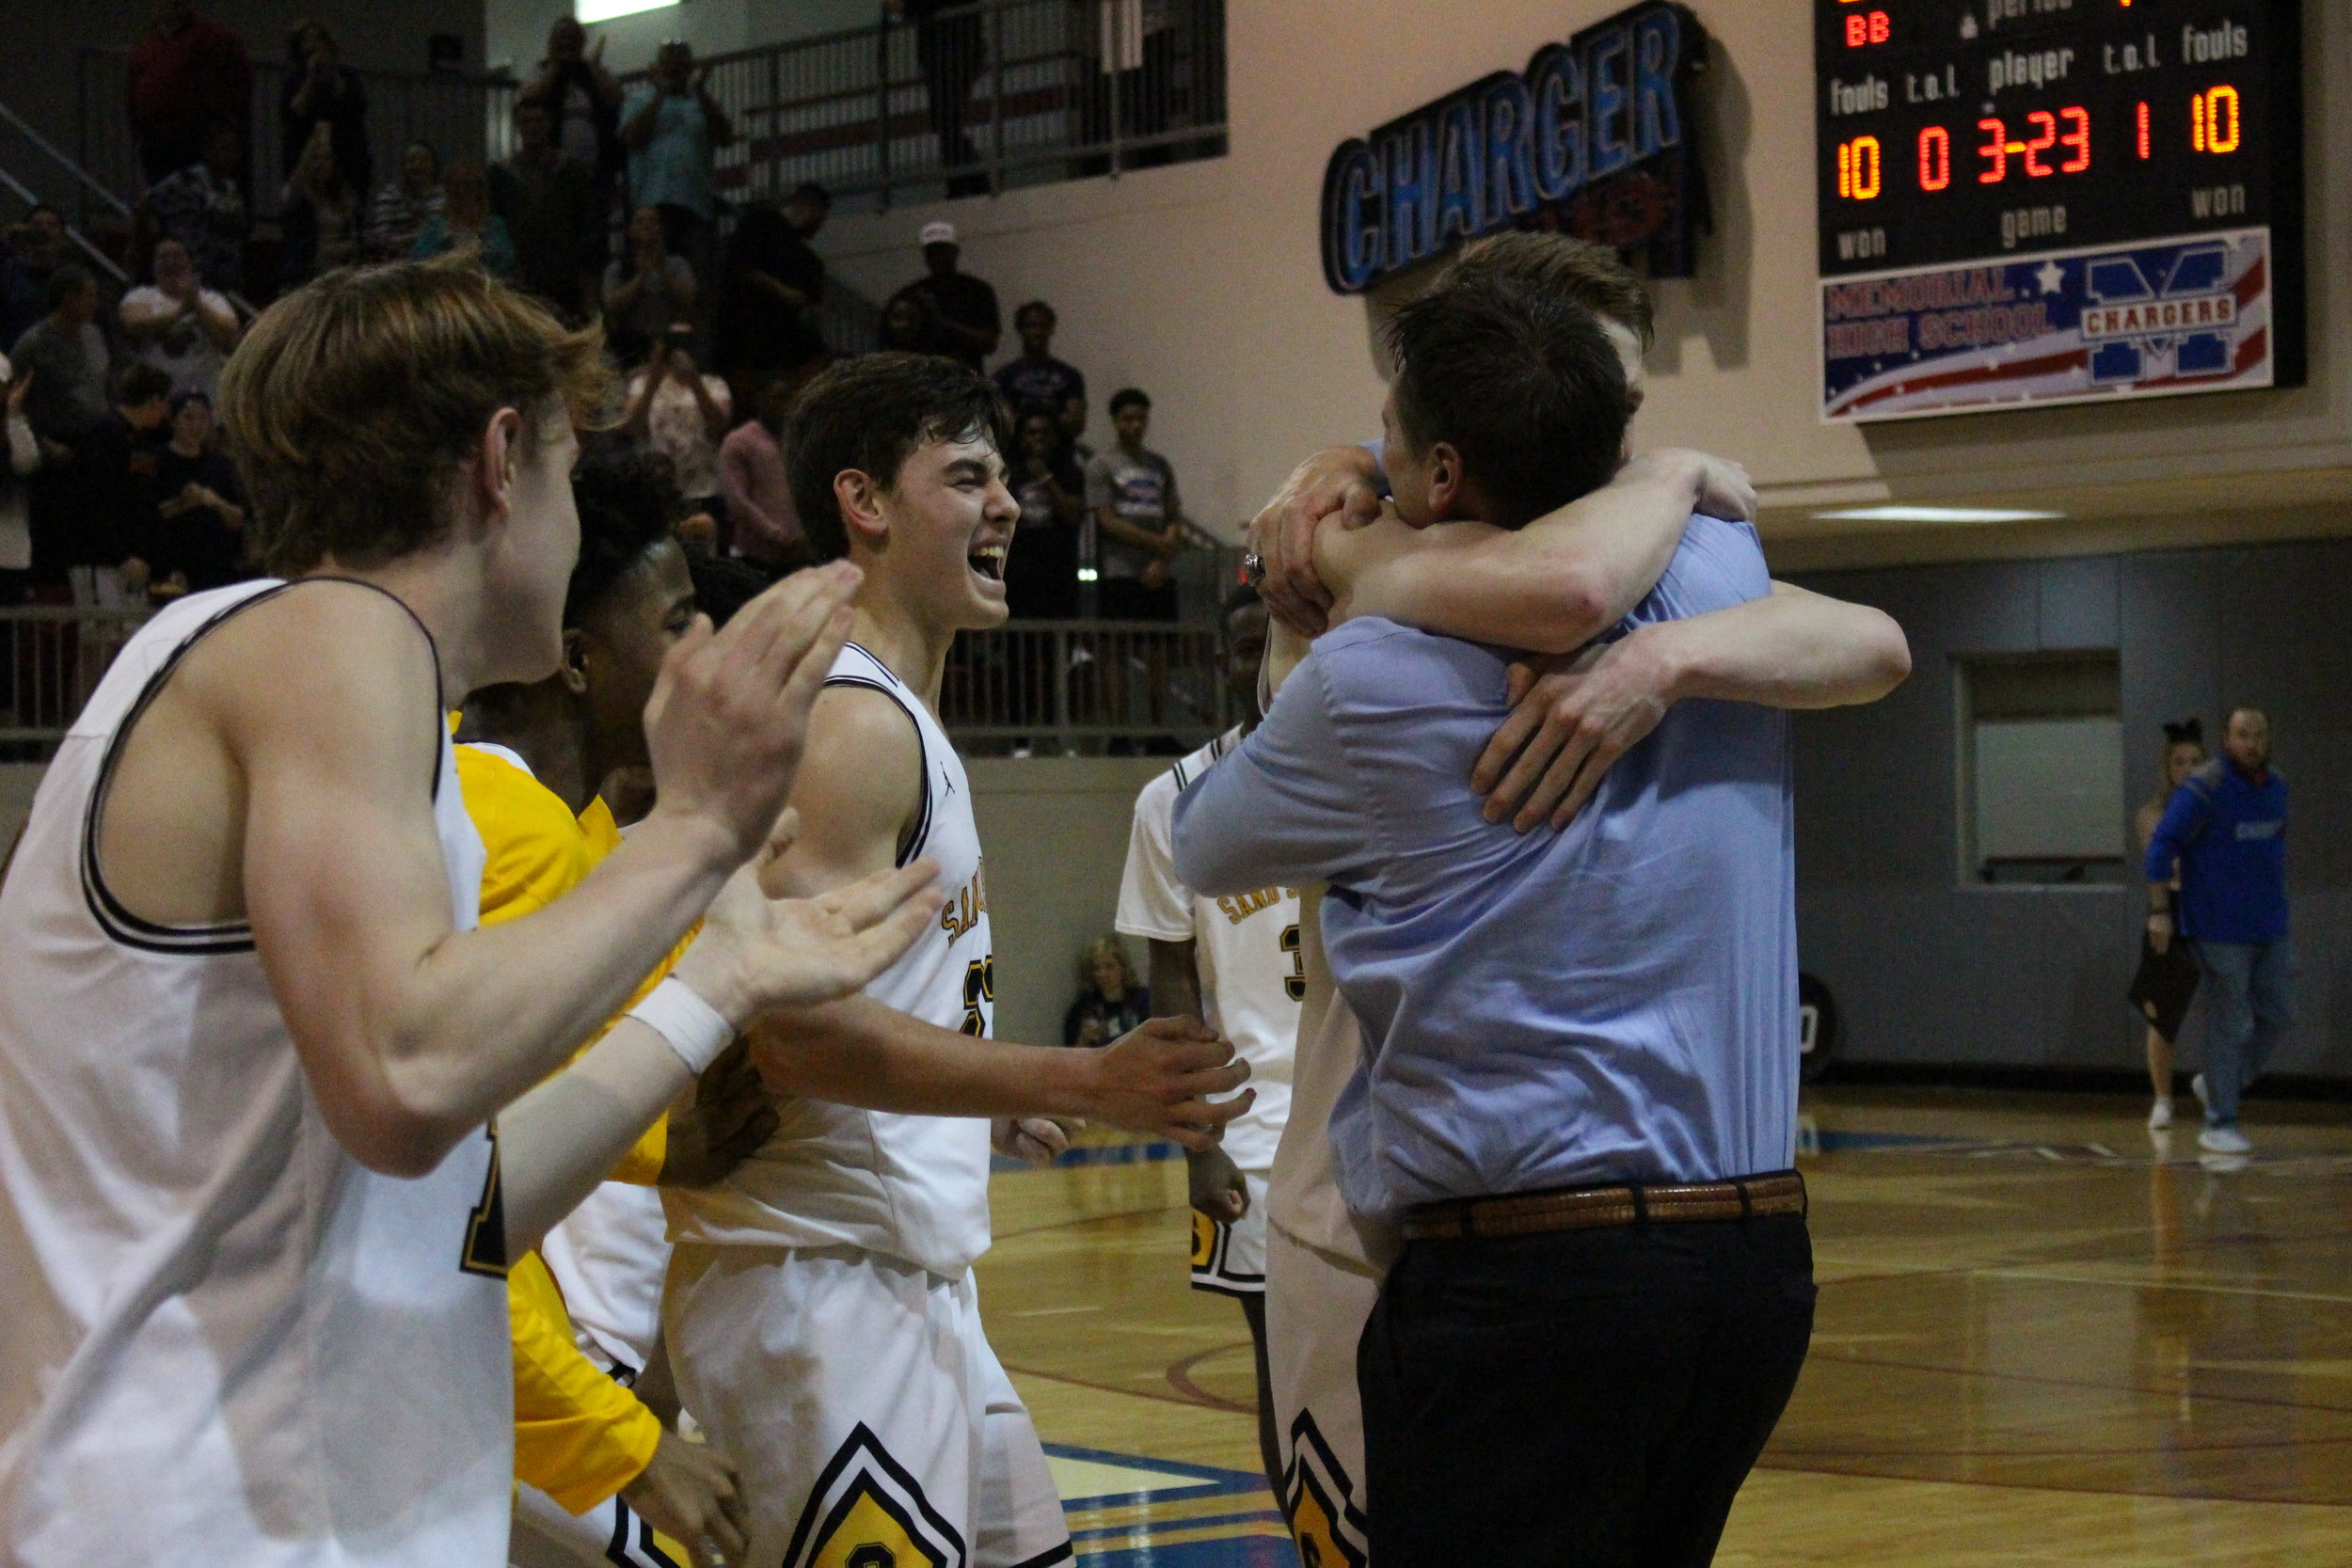 Cale, Colt, and Eric Savage celebrate after qualifying for the Sandites' first State Tournament appearance in half a century. (Photo: Morgan Miller).